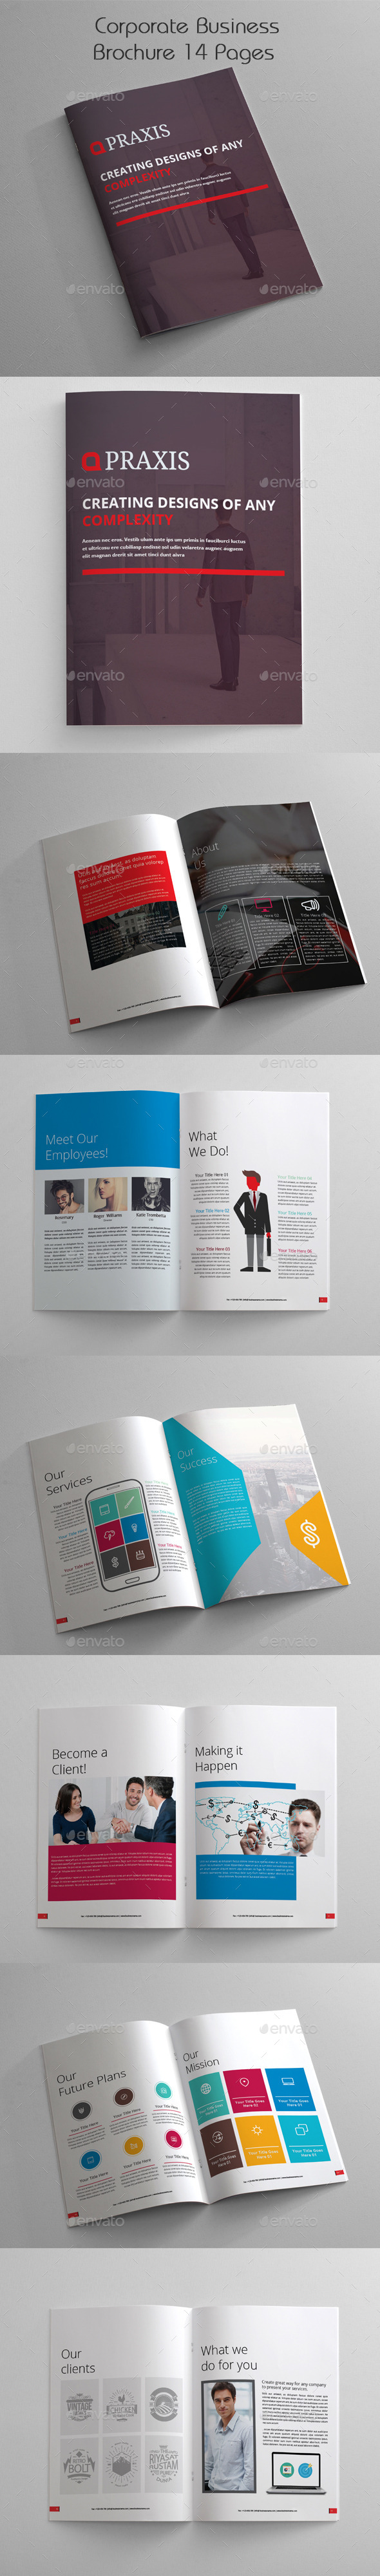 GraphicRiver Corporate Business Brochure 14 Pages 11243400